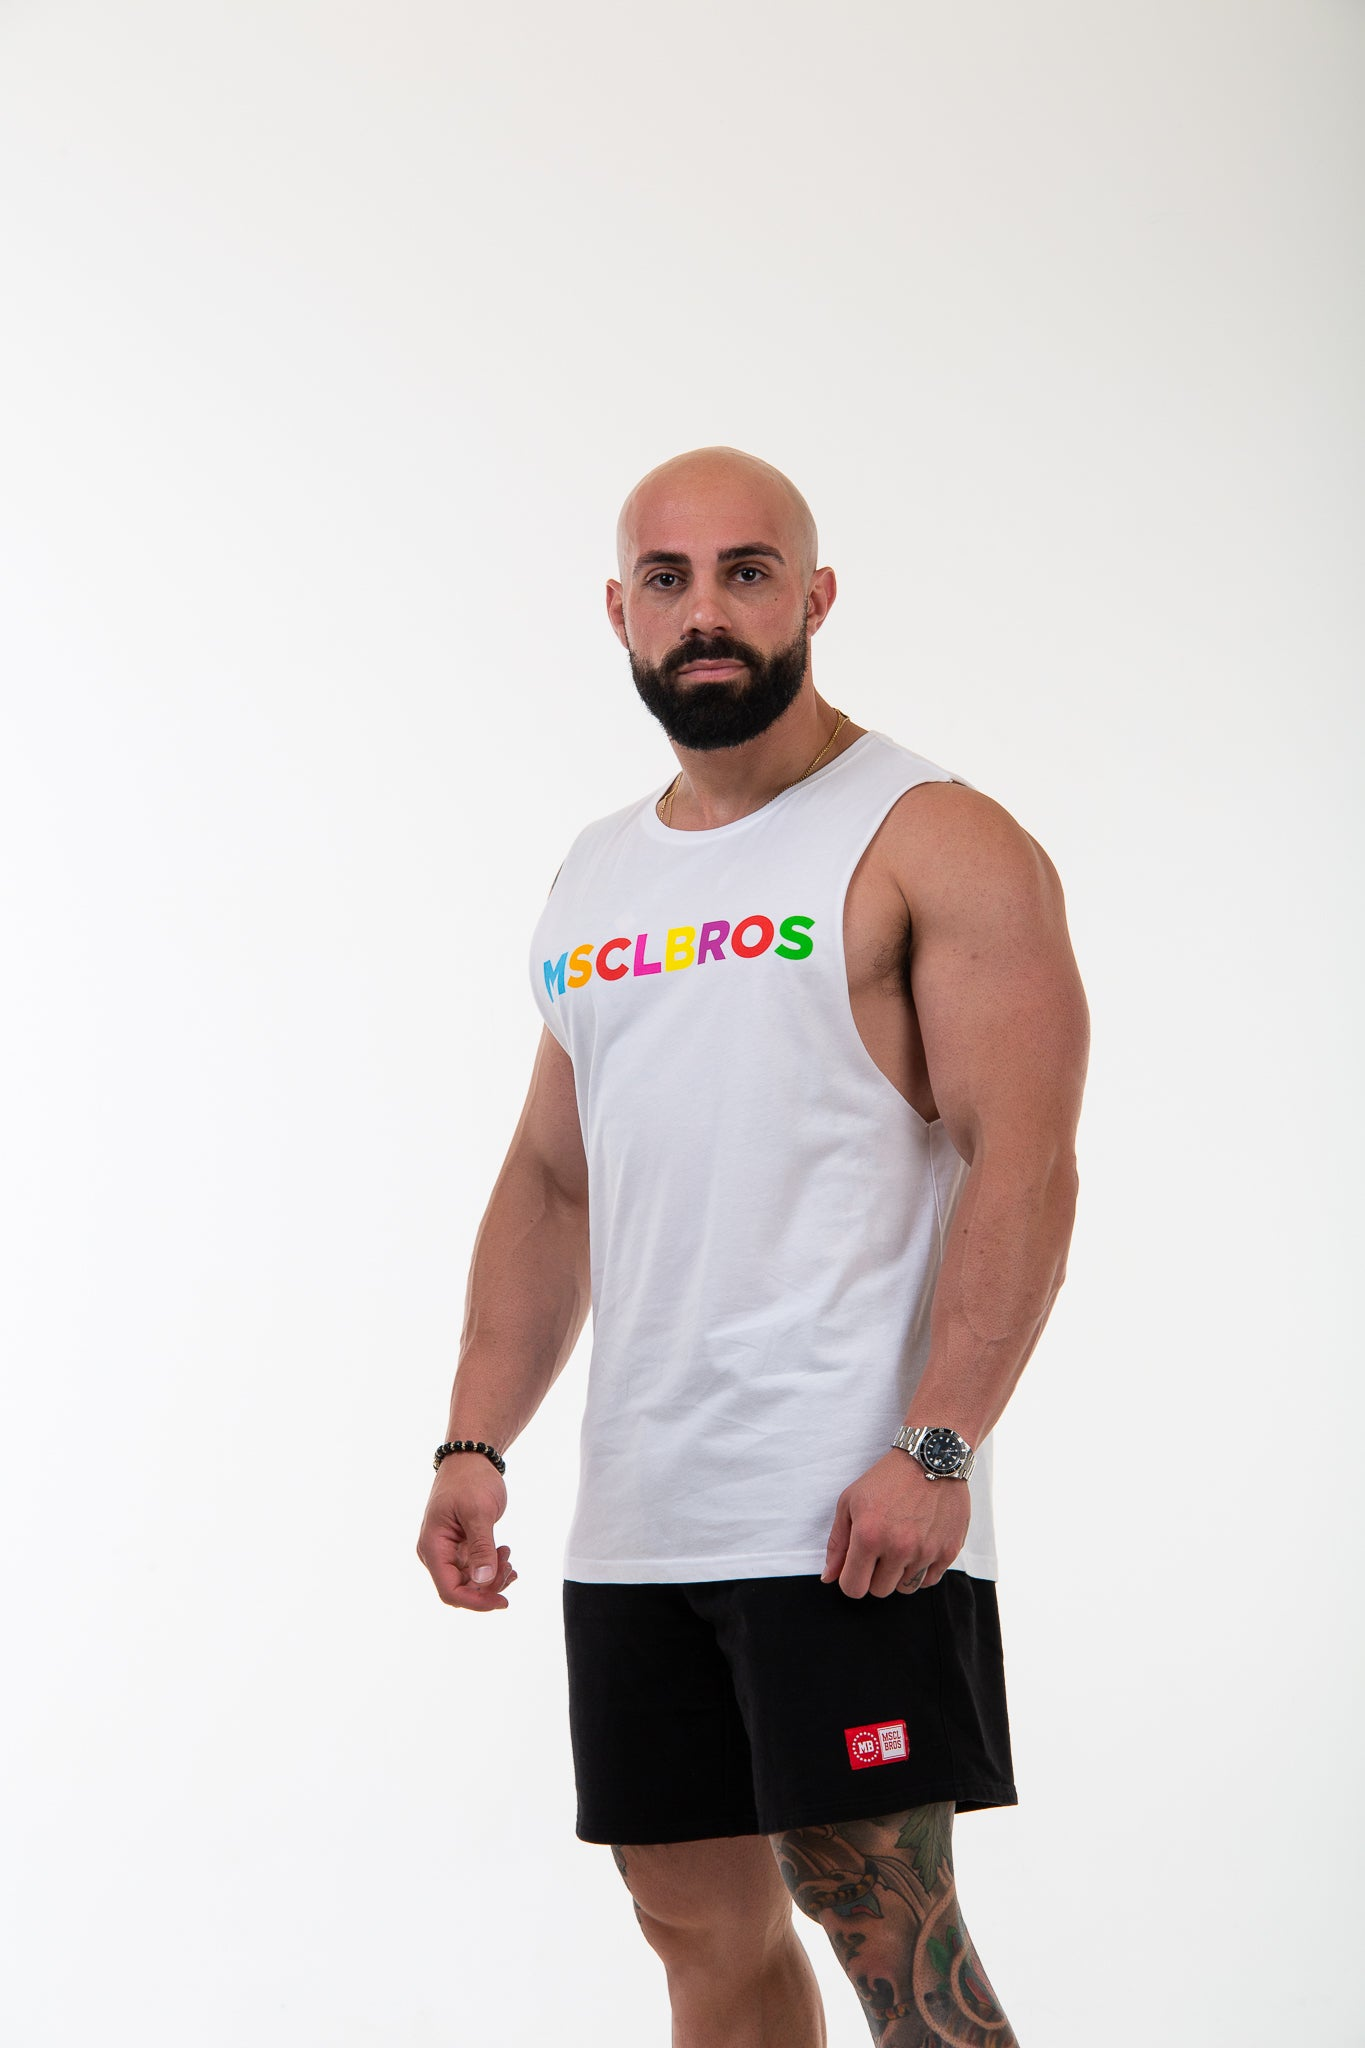 19/20 Spring Colourful White Muscle Tee